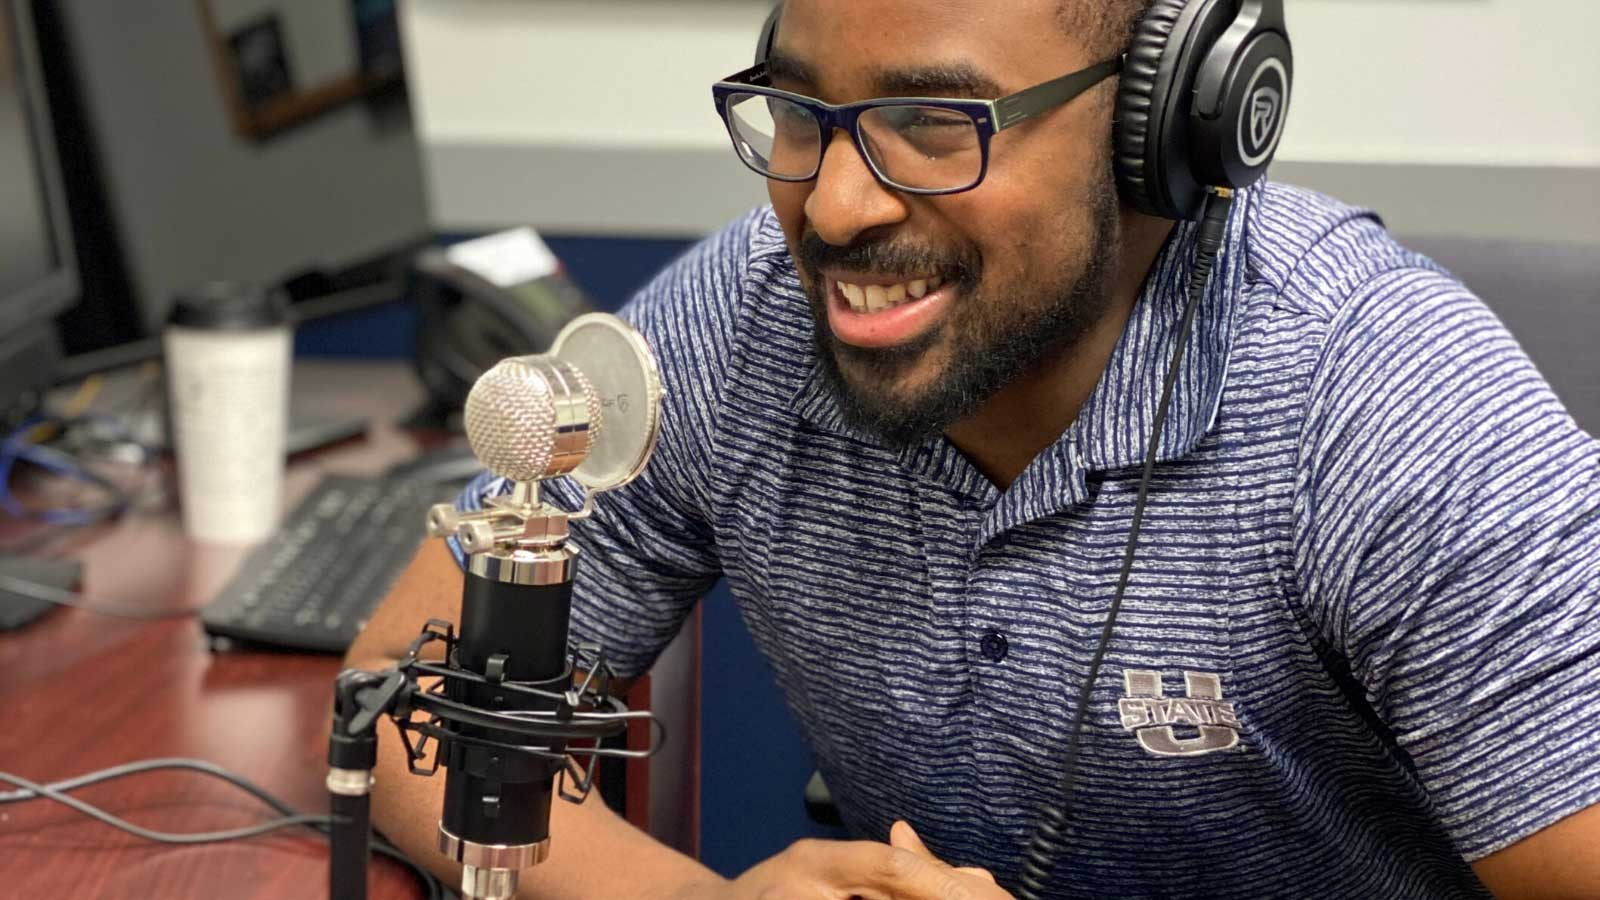 Isaiah Jones, USU's transition, parent and family coordinator creates a podcast.